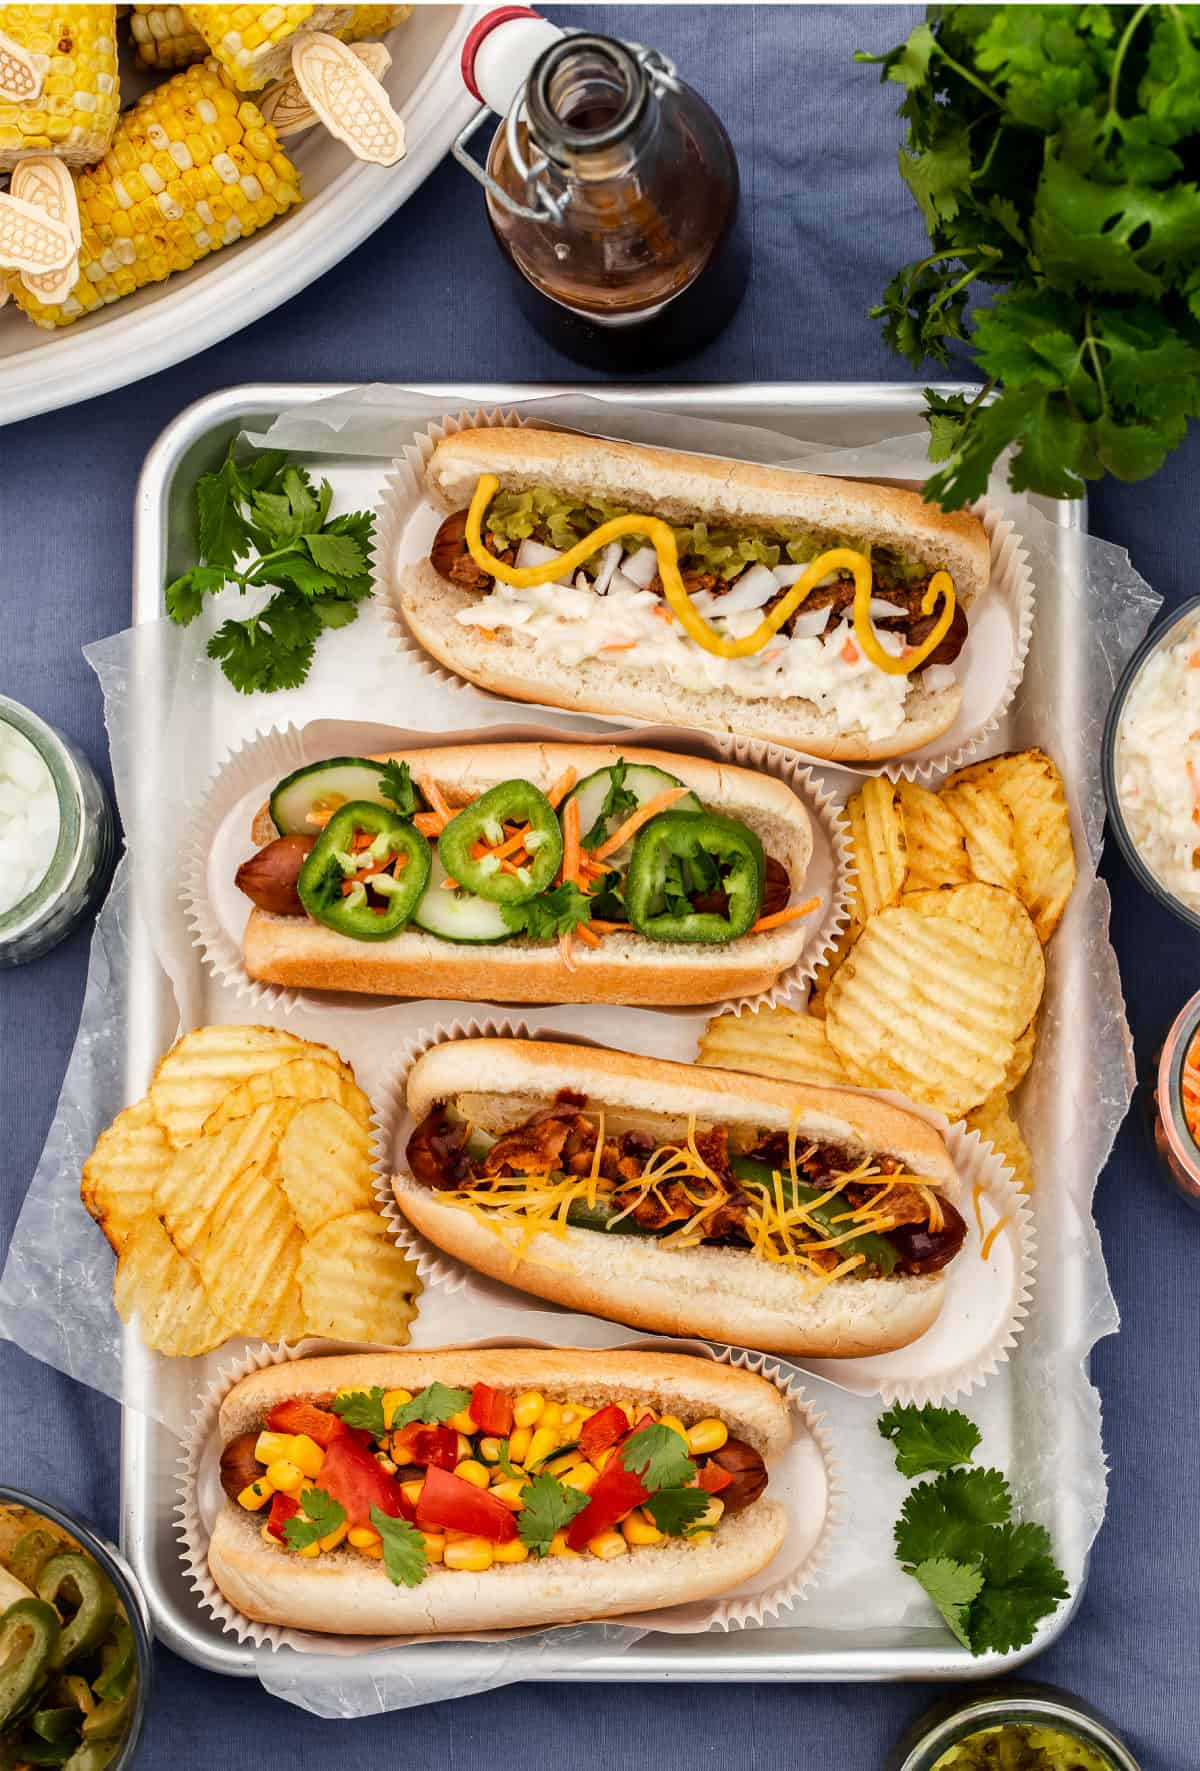 4 hot dogs on a pan, topped in different ways